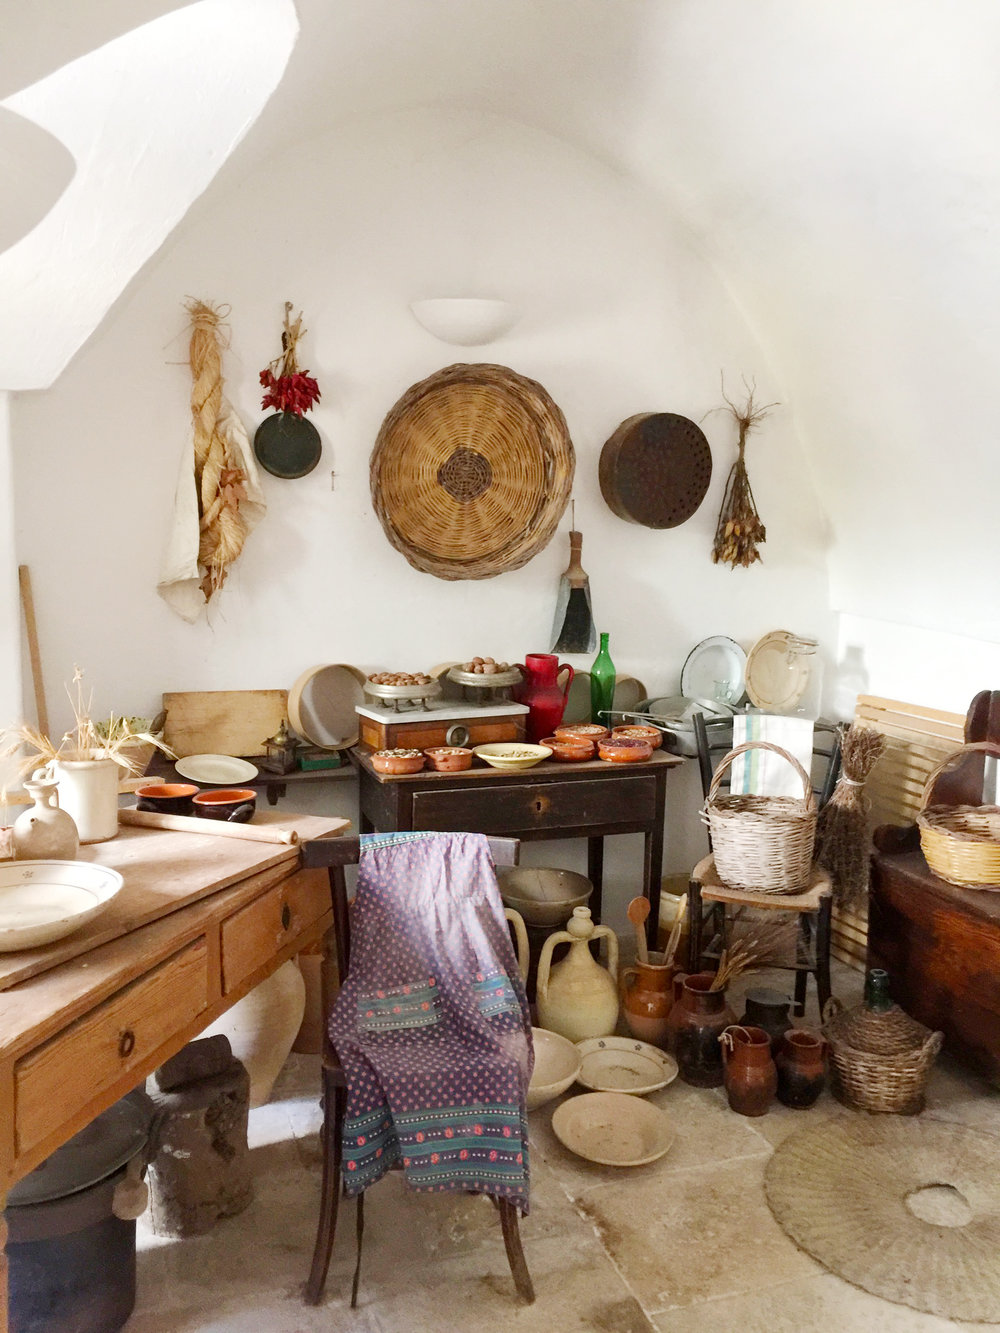 kitchen inside the museum.jpg